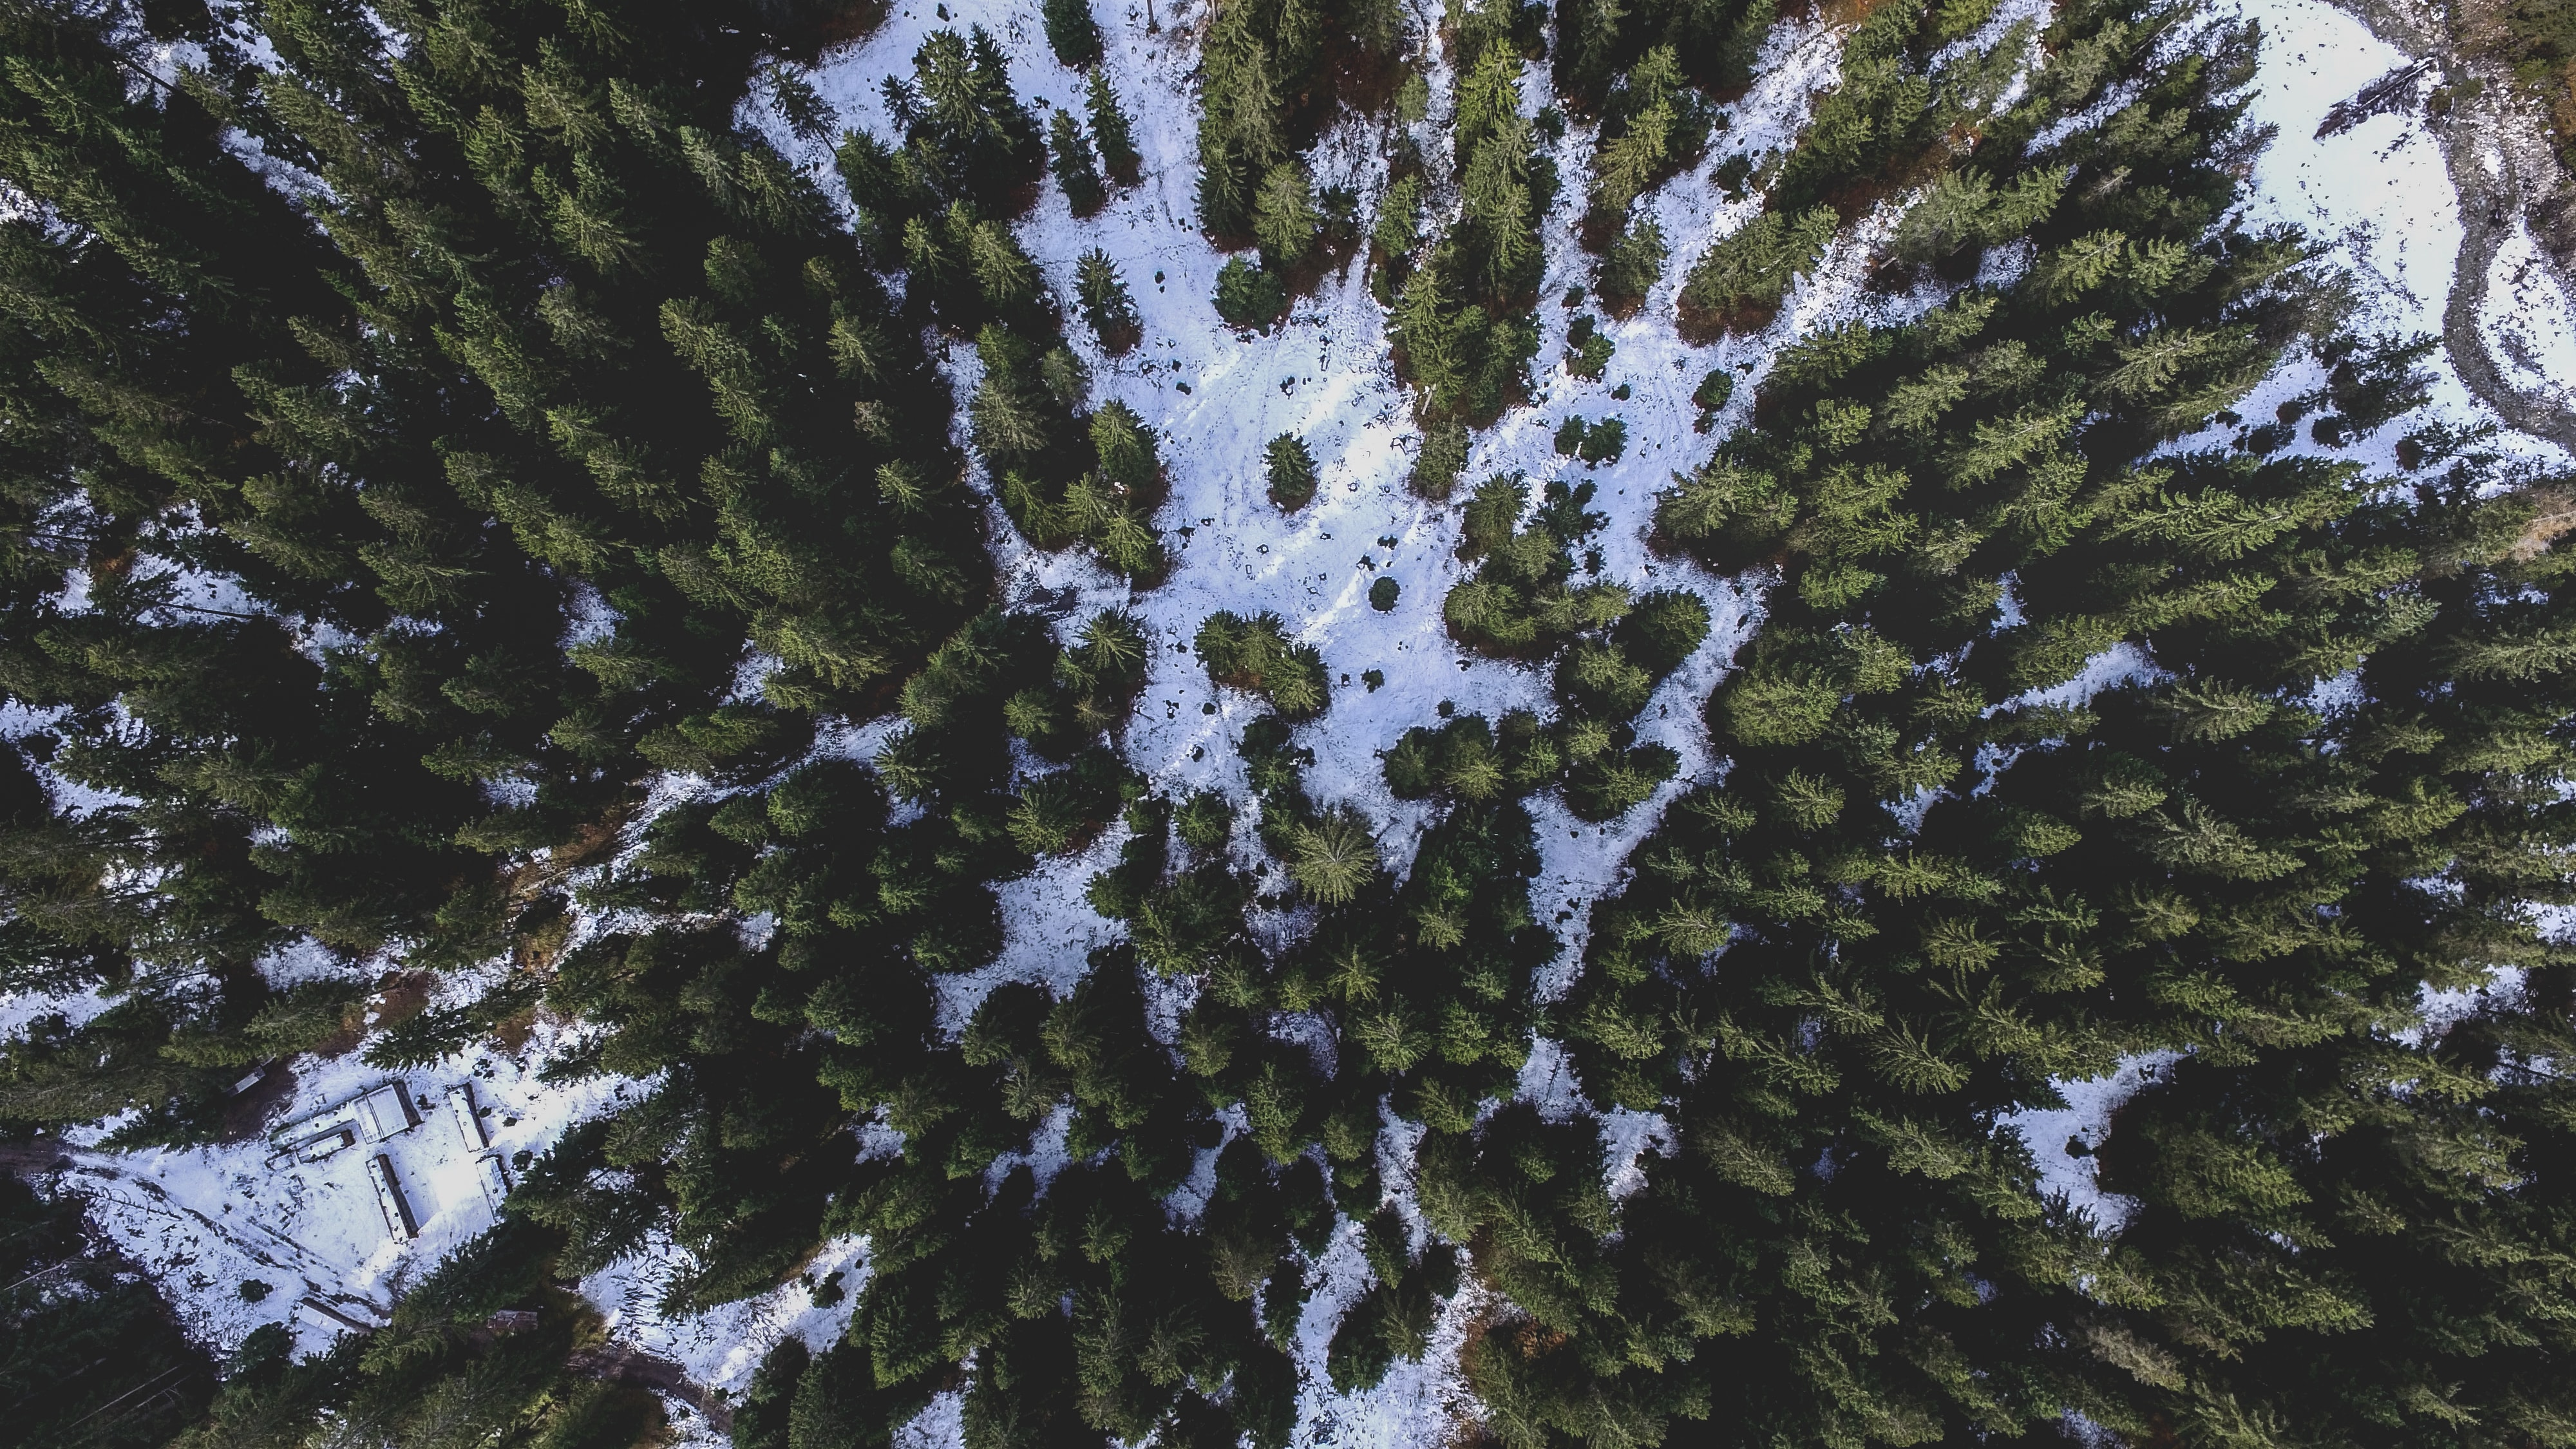 A drone shot of a coniferous forest in Leutasch in winter